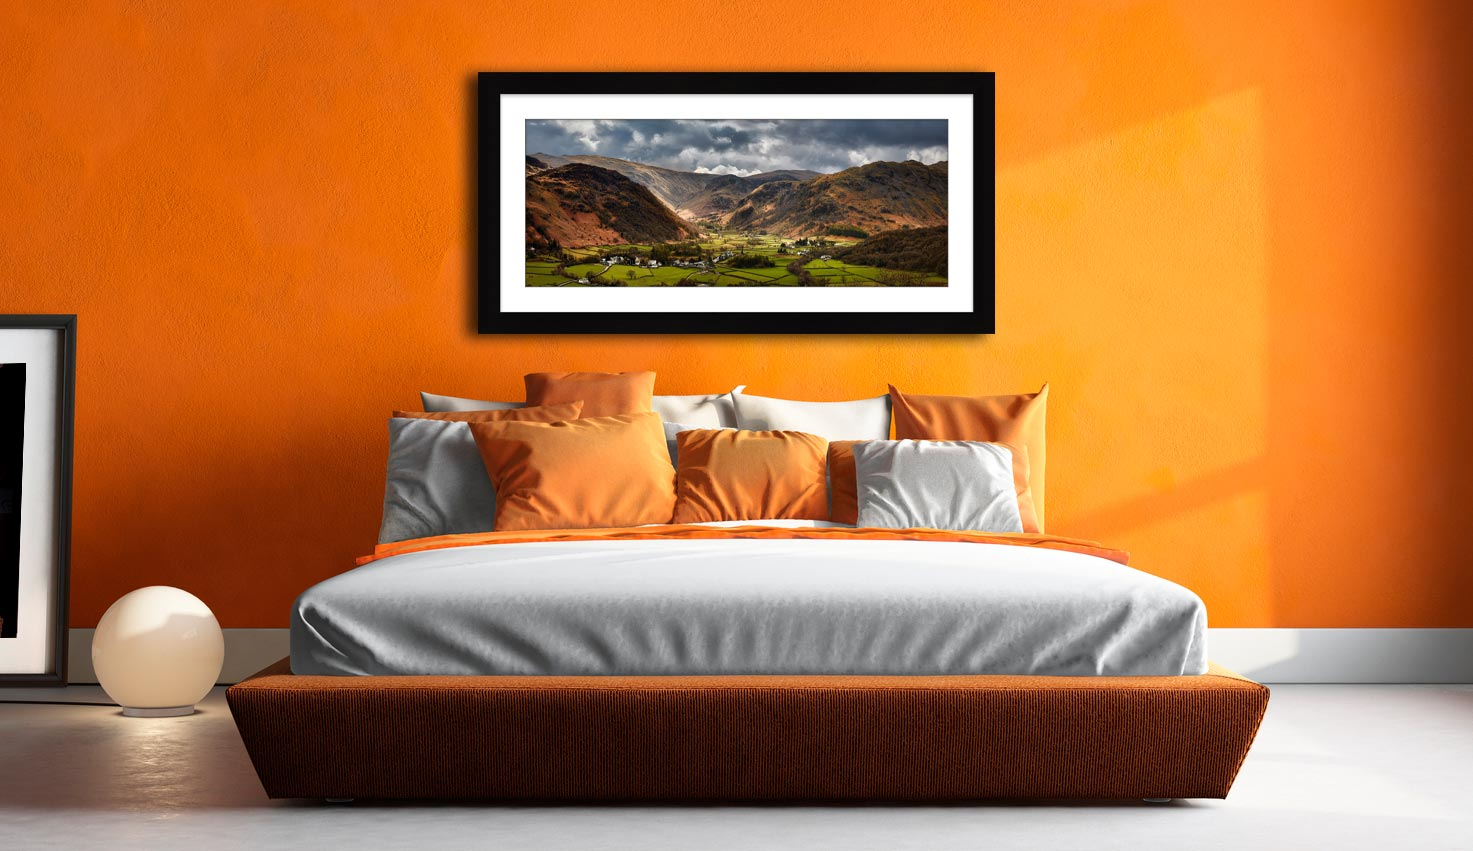 Borrowdale Pastures - Framed Print with Mount on Wall